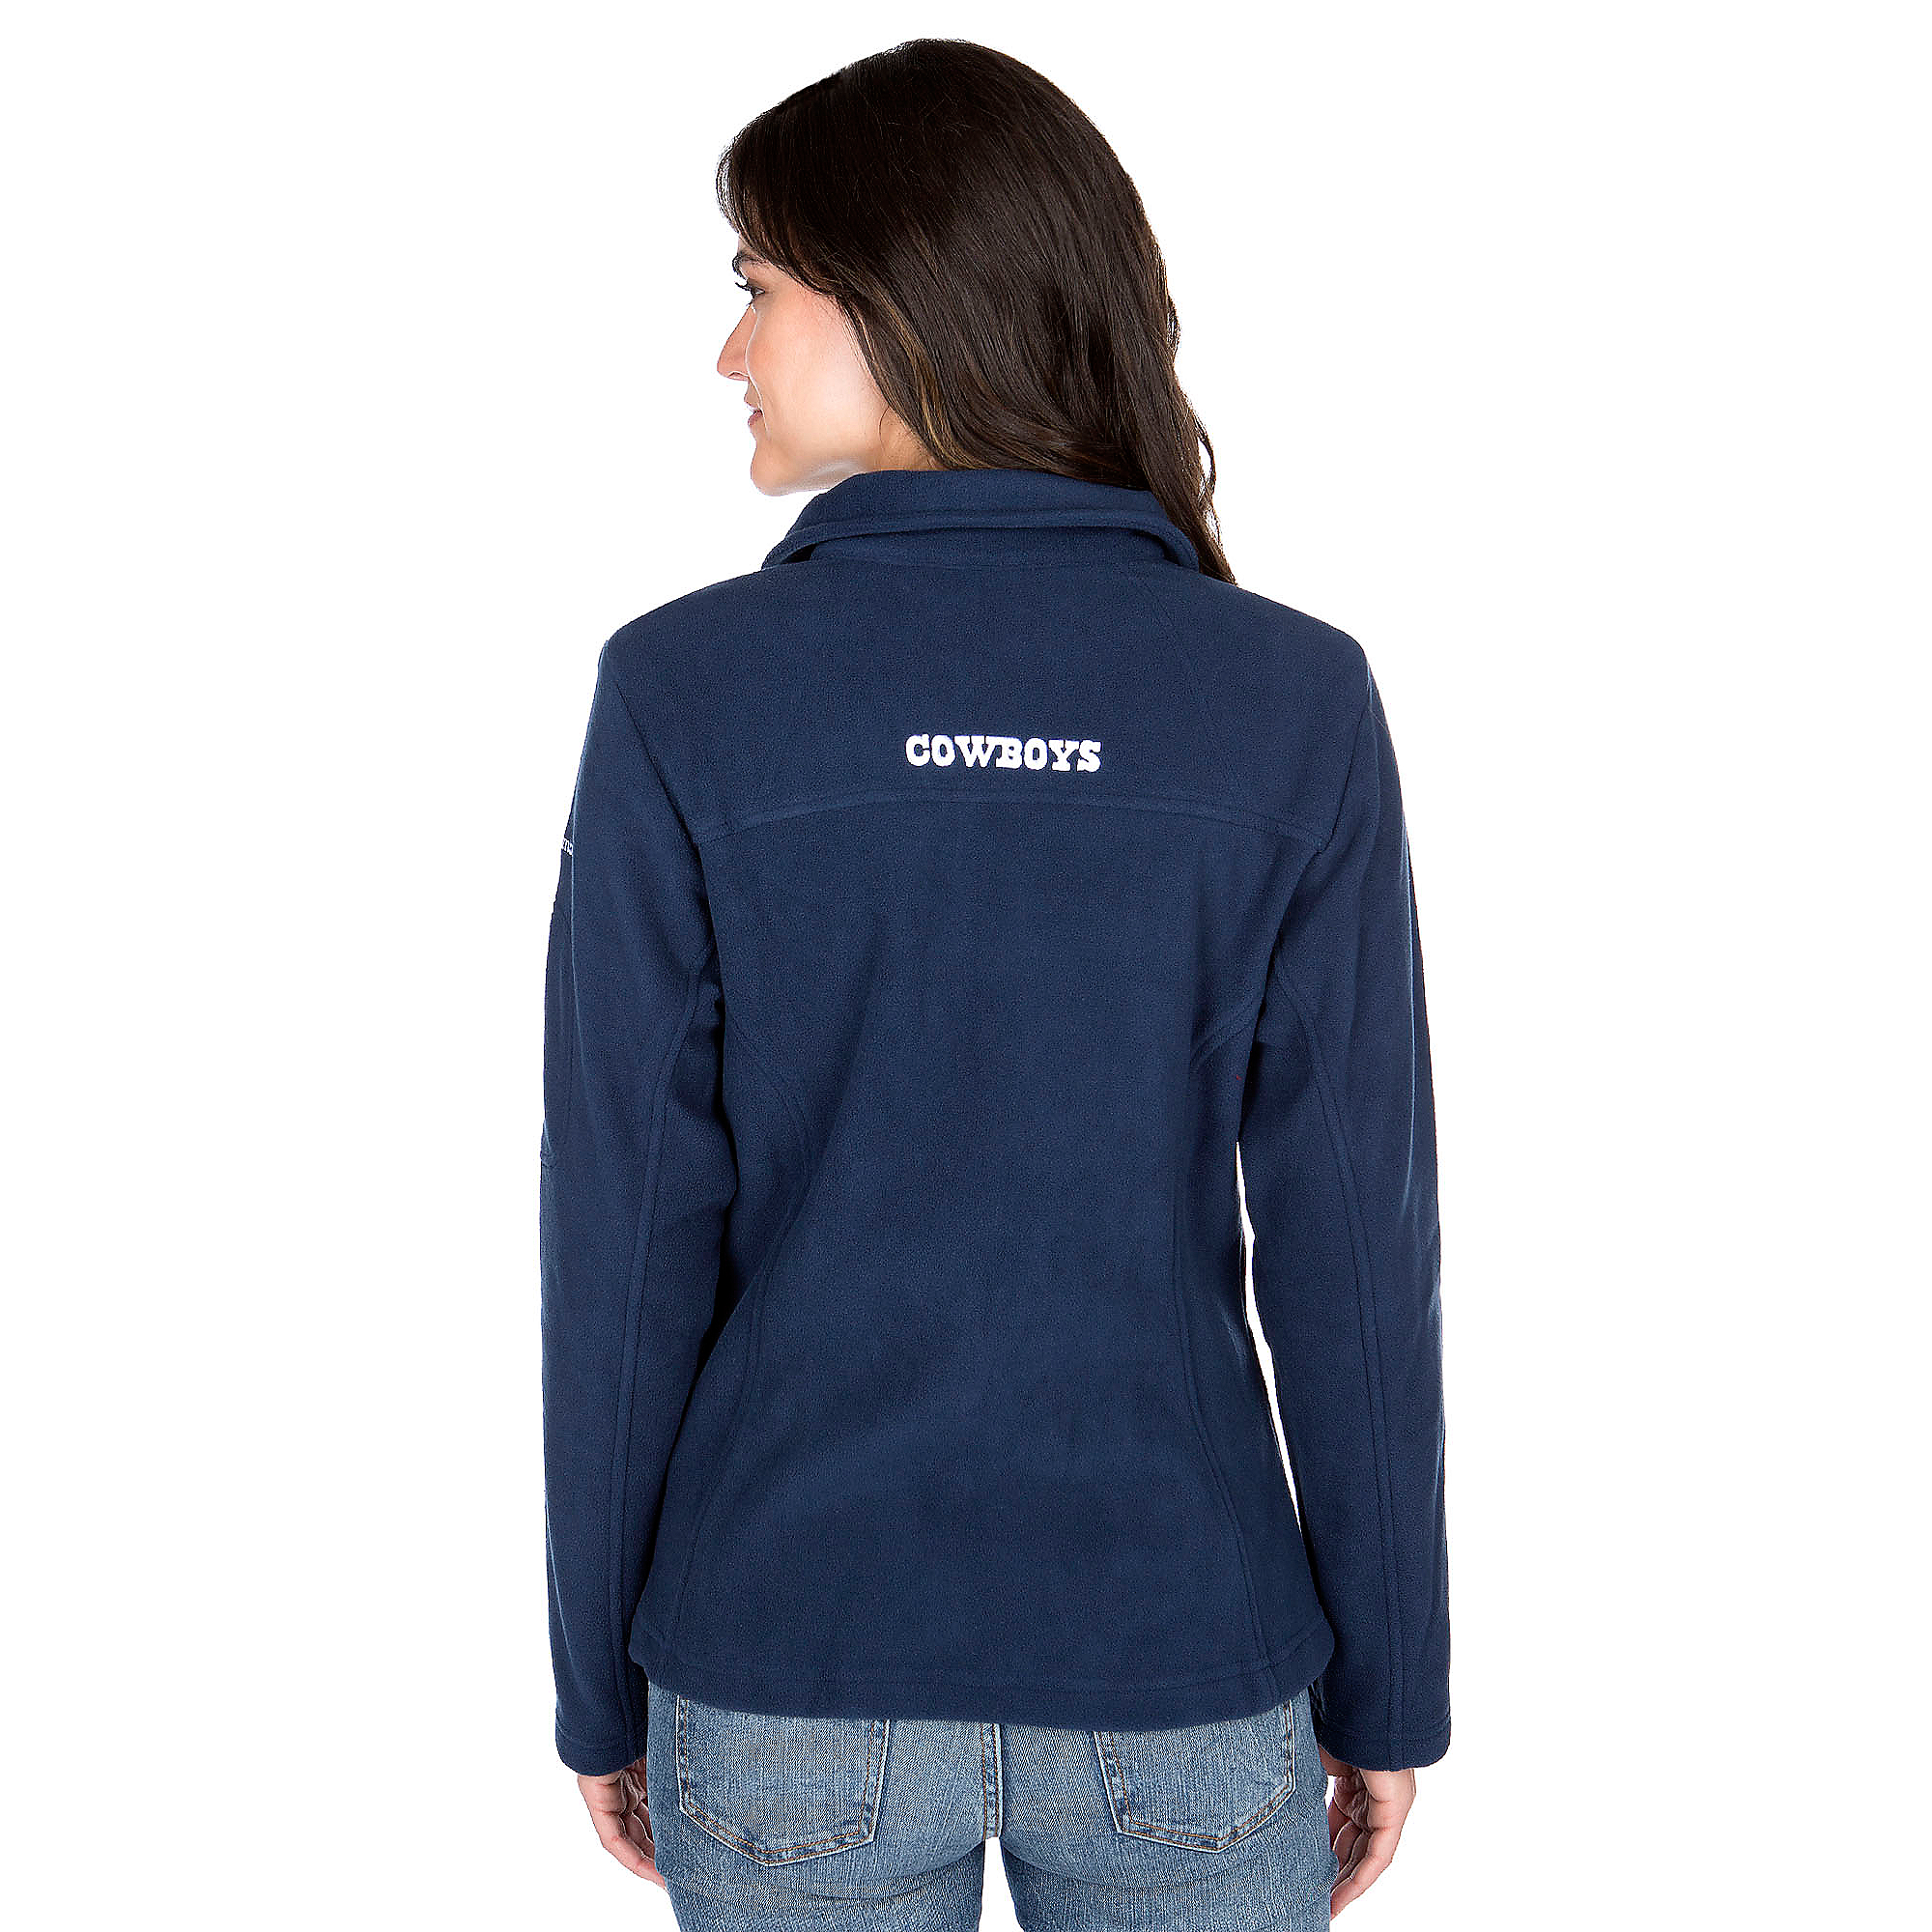 promo code 71116 915d0 Dallas Cowboys Columbia Womens Give And Go Full-Zip Jacket ...